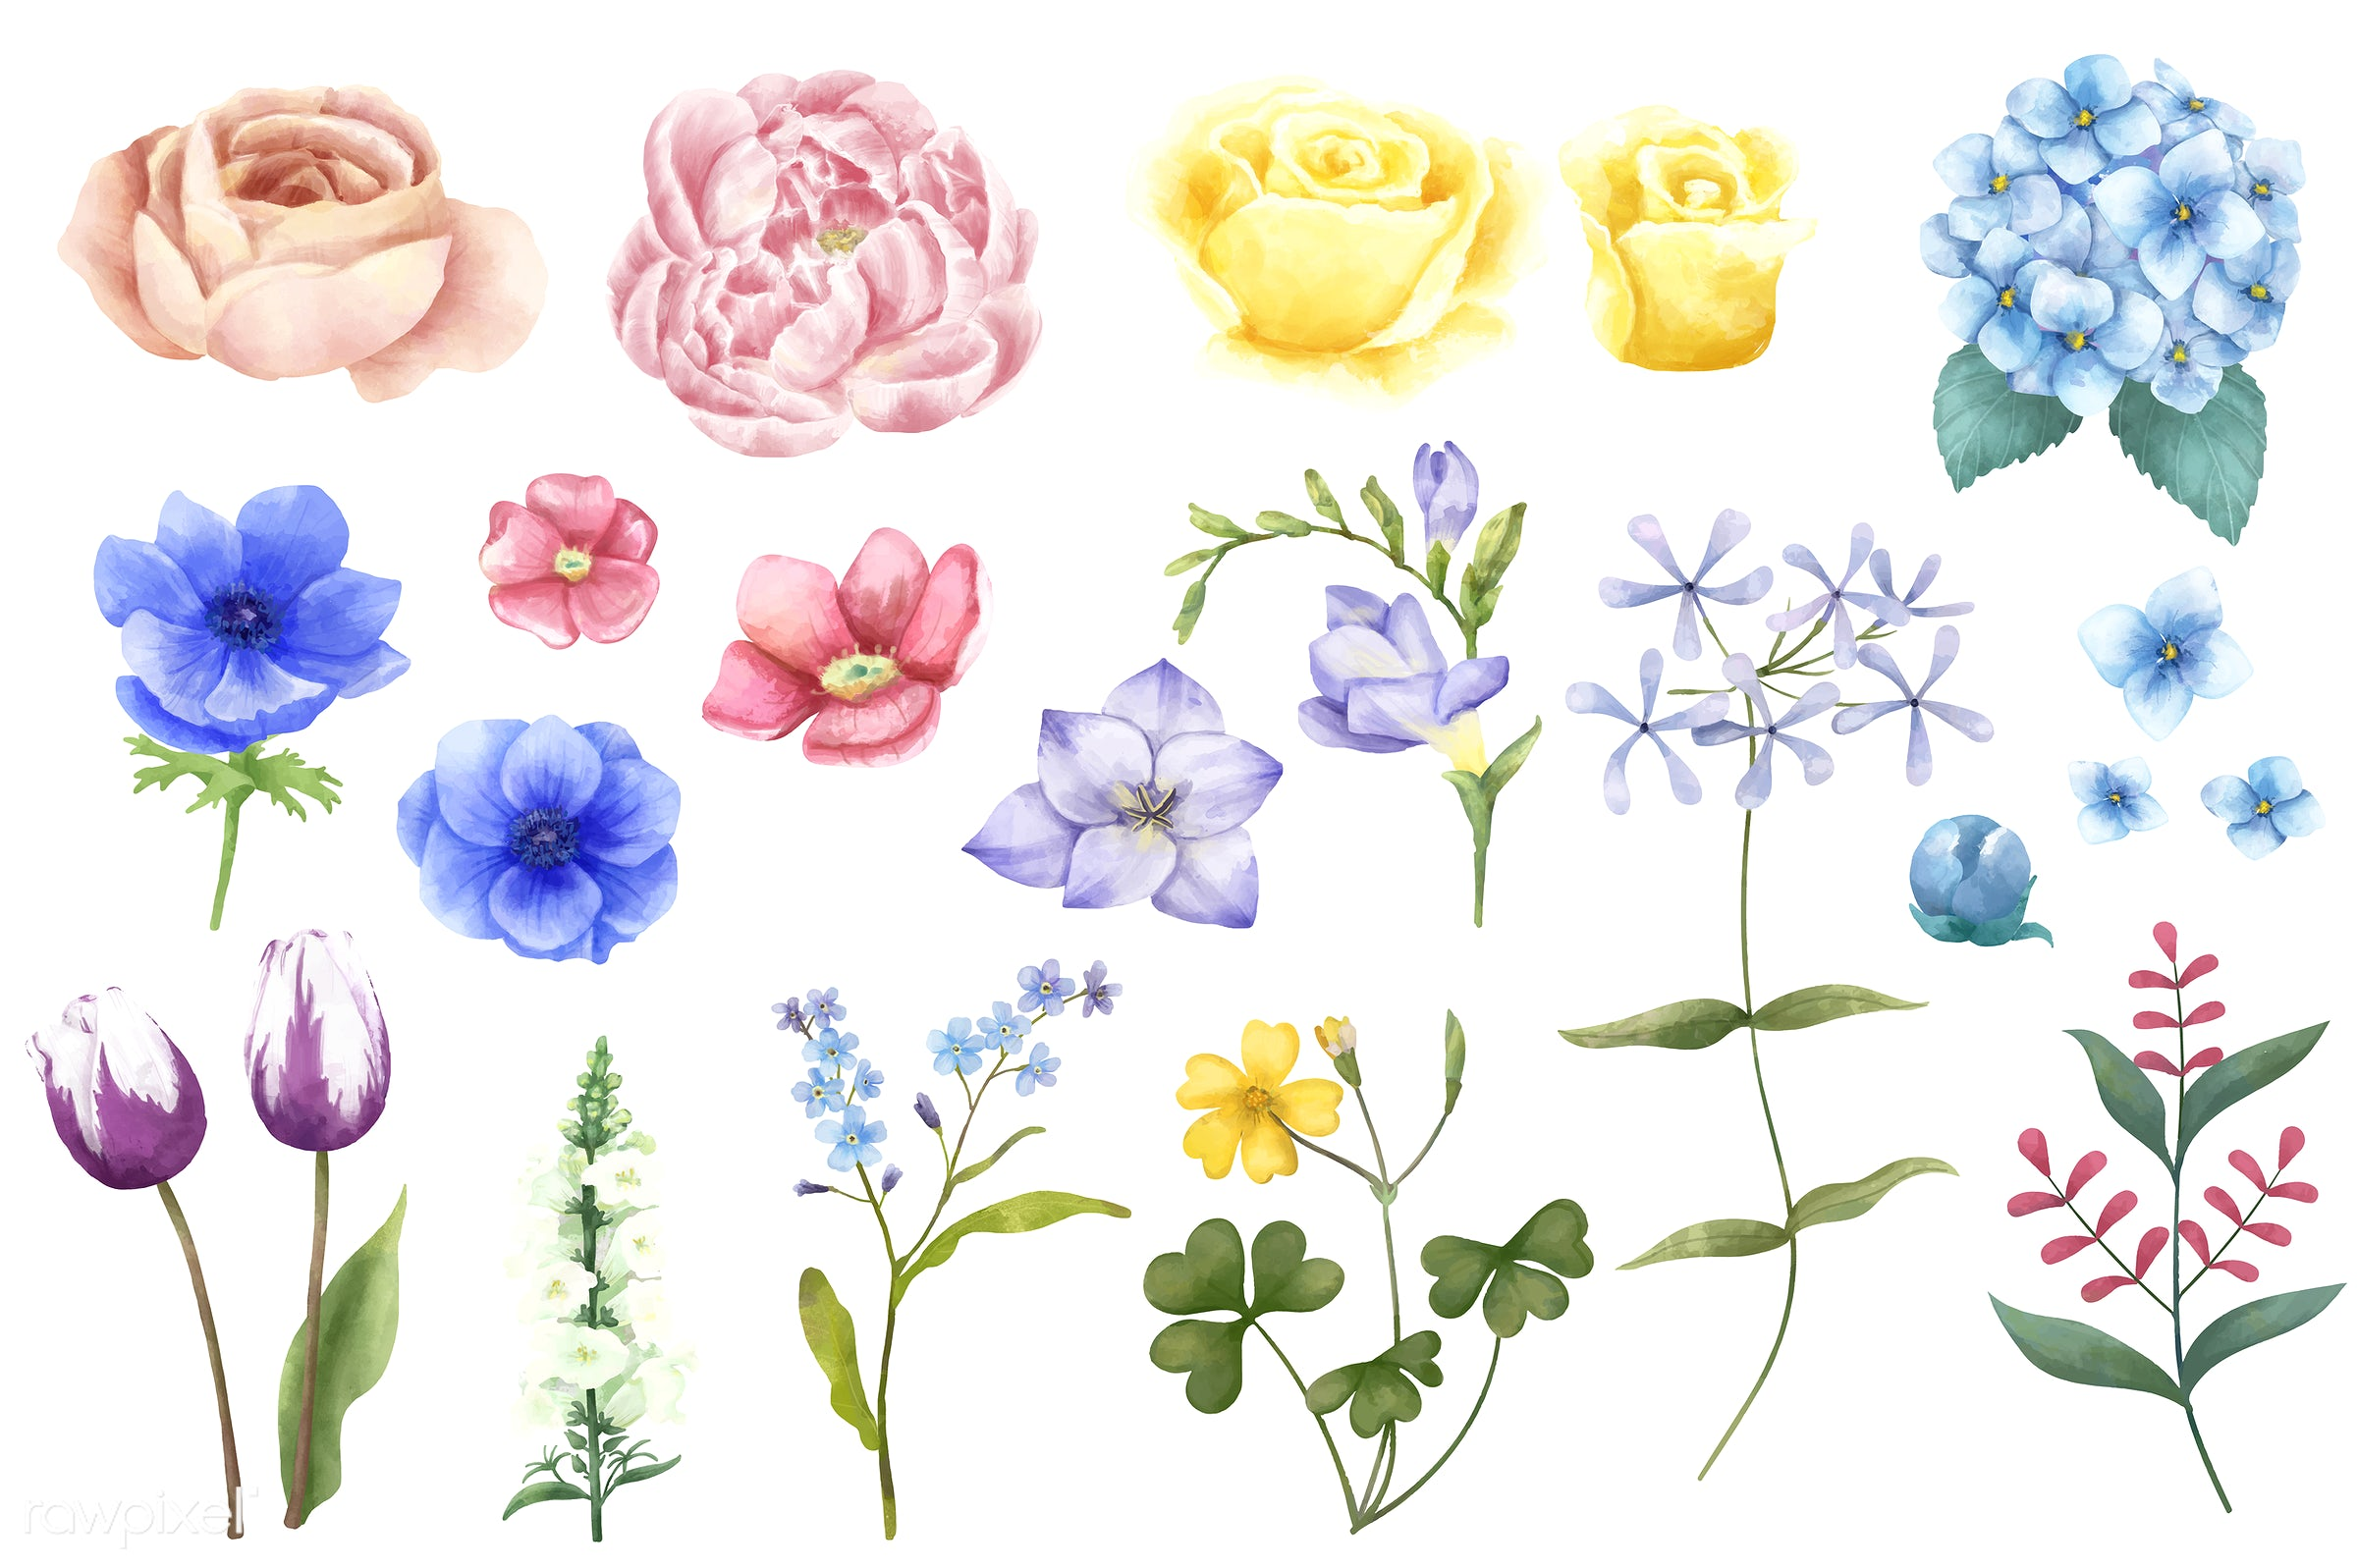 Different Types Of Illustrated Flowers Isolated On White Background